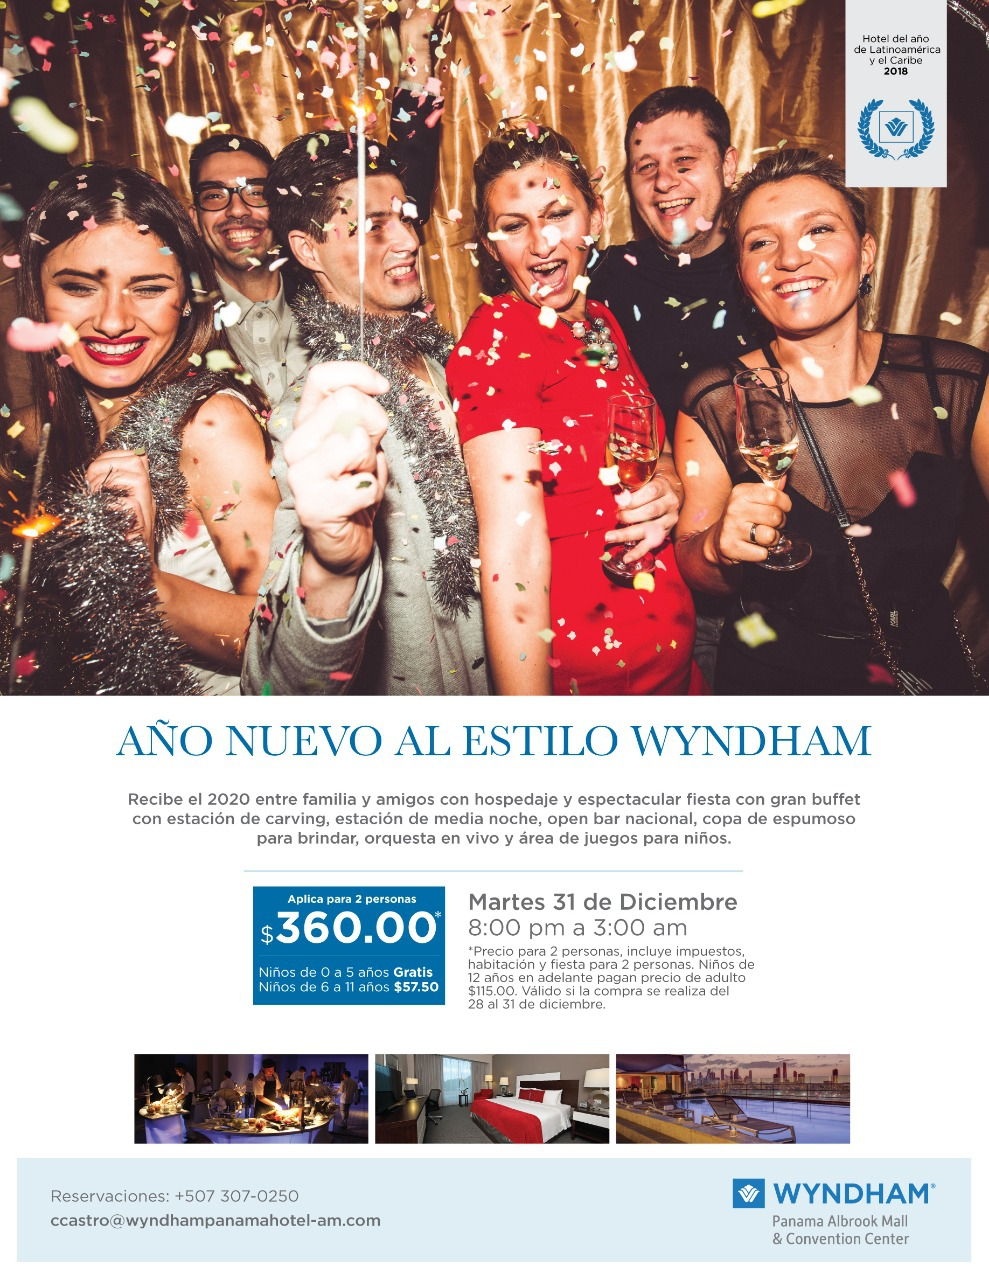 New Year's Eve at Wyndham 2020